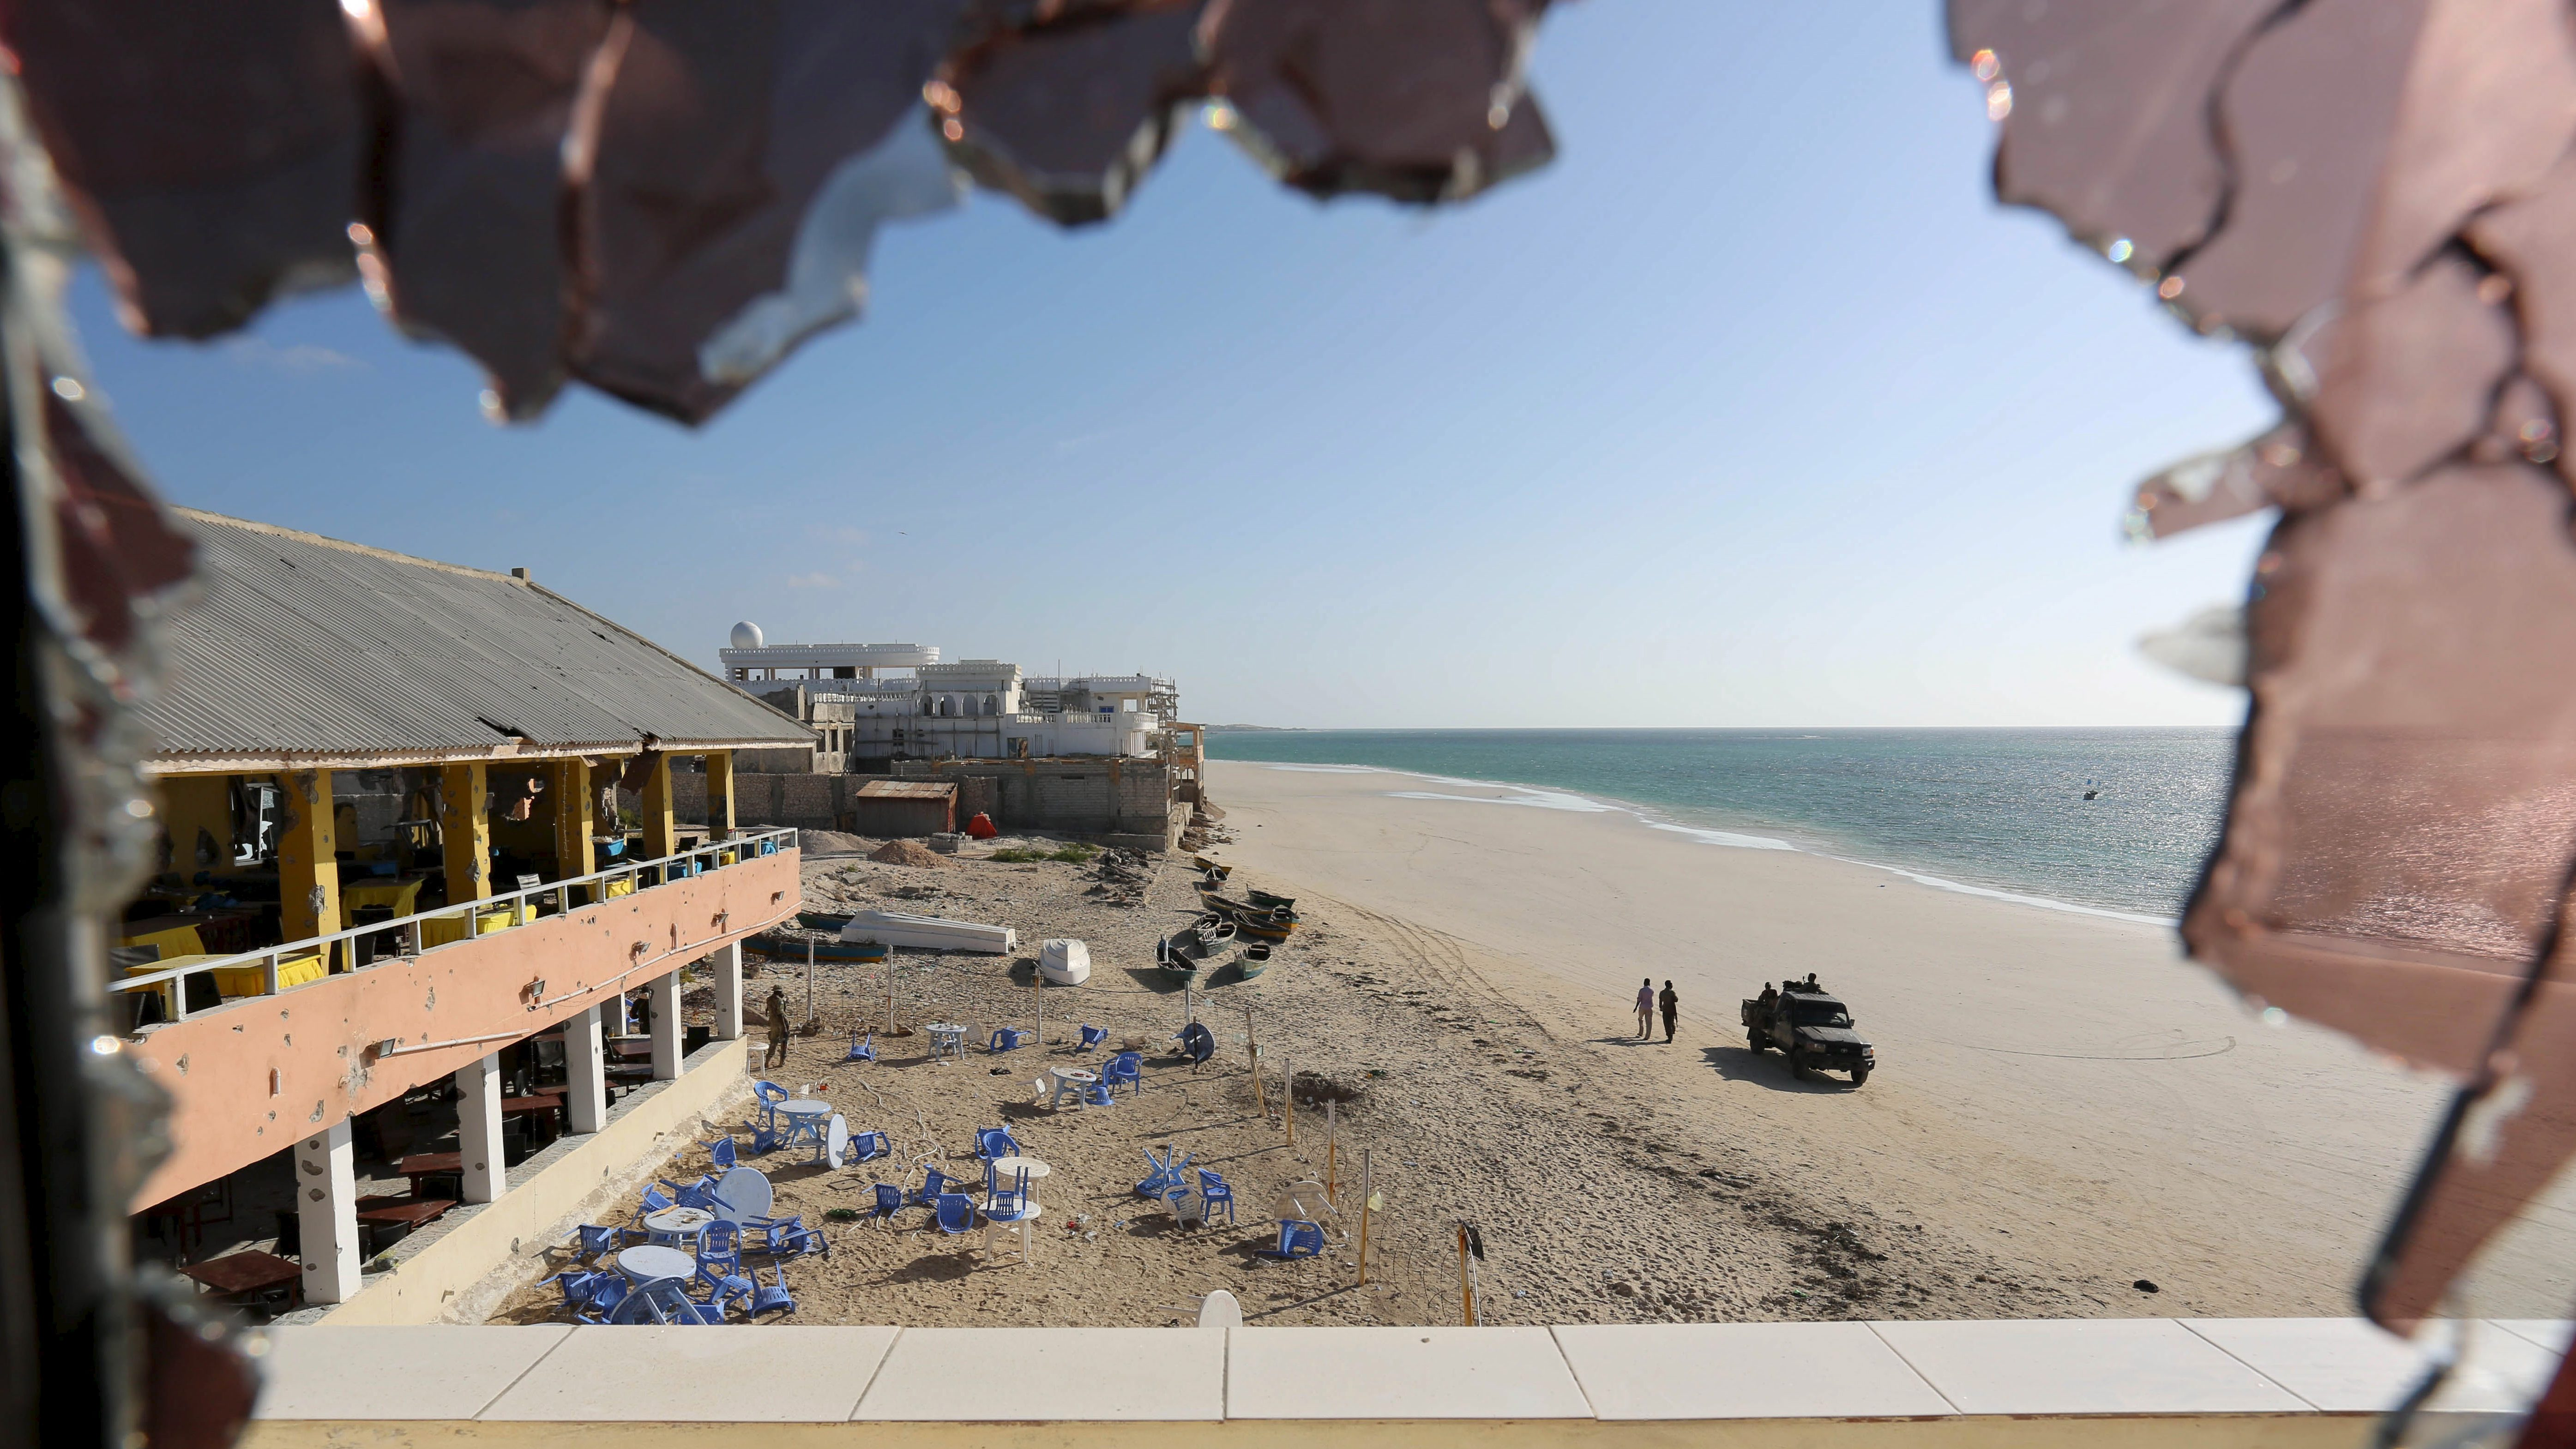 A general view through a broken glass shows government forces patrolling on Lido beach following an attack at beachside restaurant Beach View Cafe in Somalia's capital Mogadishu, January 22, 2016.